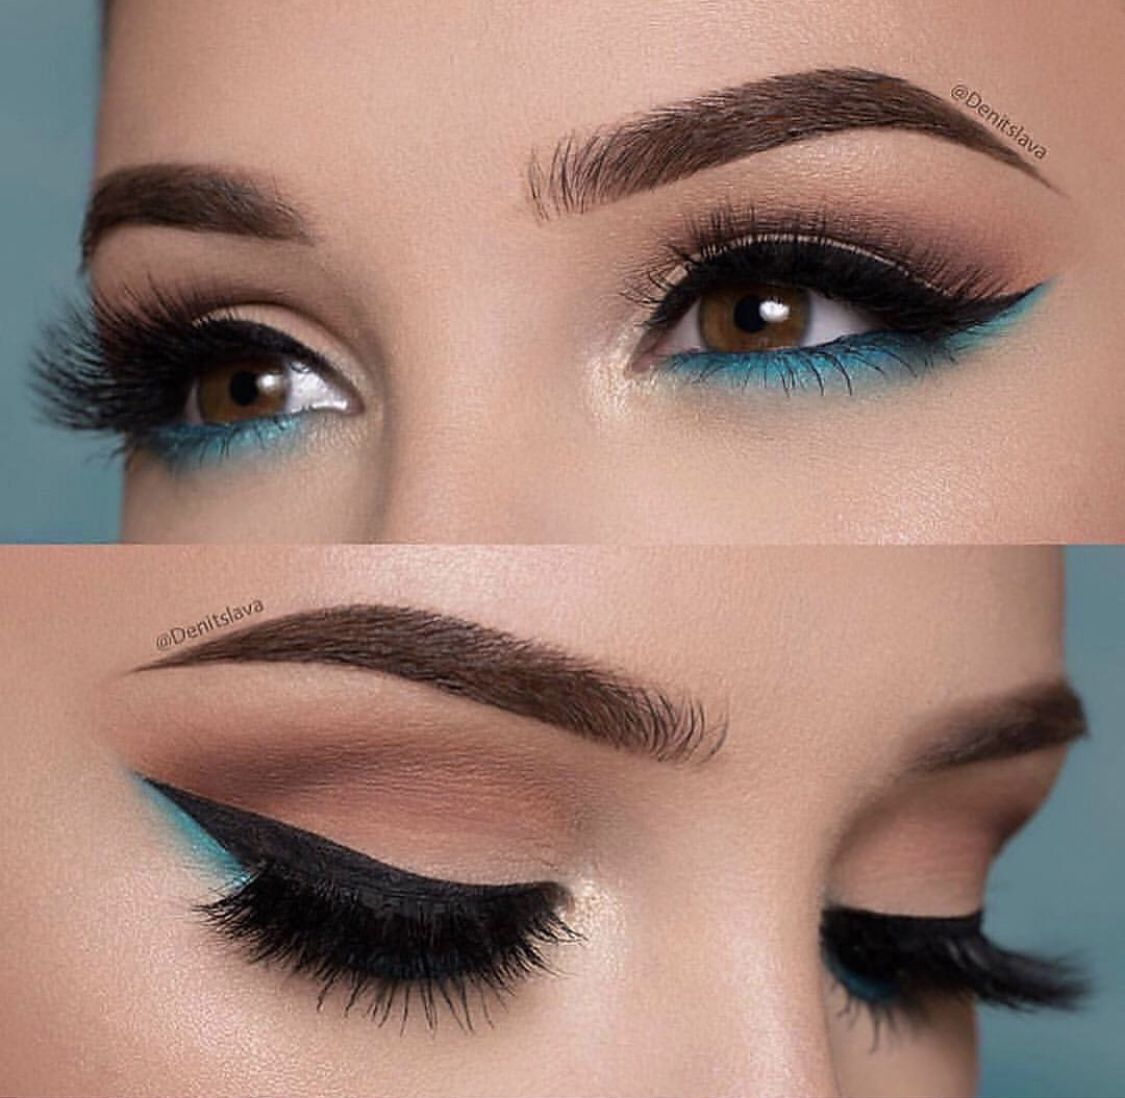 Follow my Instagram @amourdelia | makeup & hairstyle ideas ...